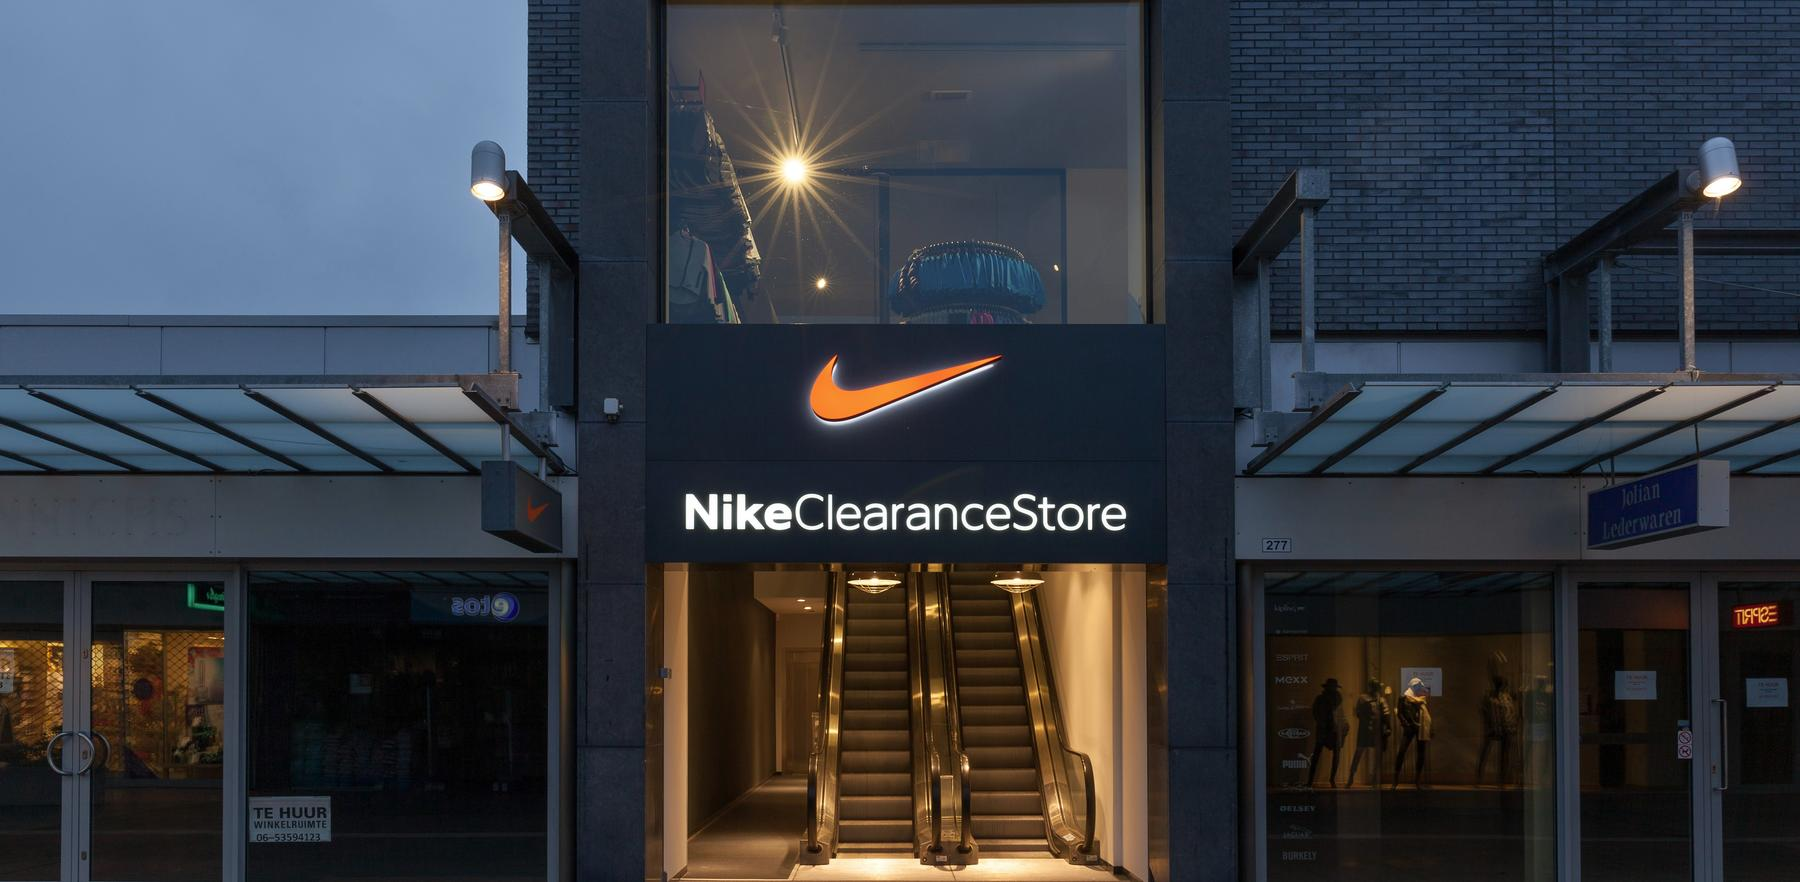 190508655c5 Nike Clearance Store Eindhoven. Eindhoven, . Nike.com